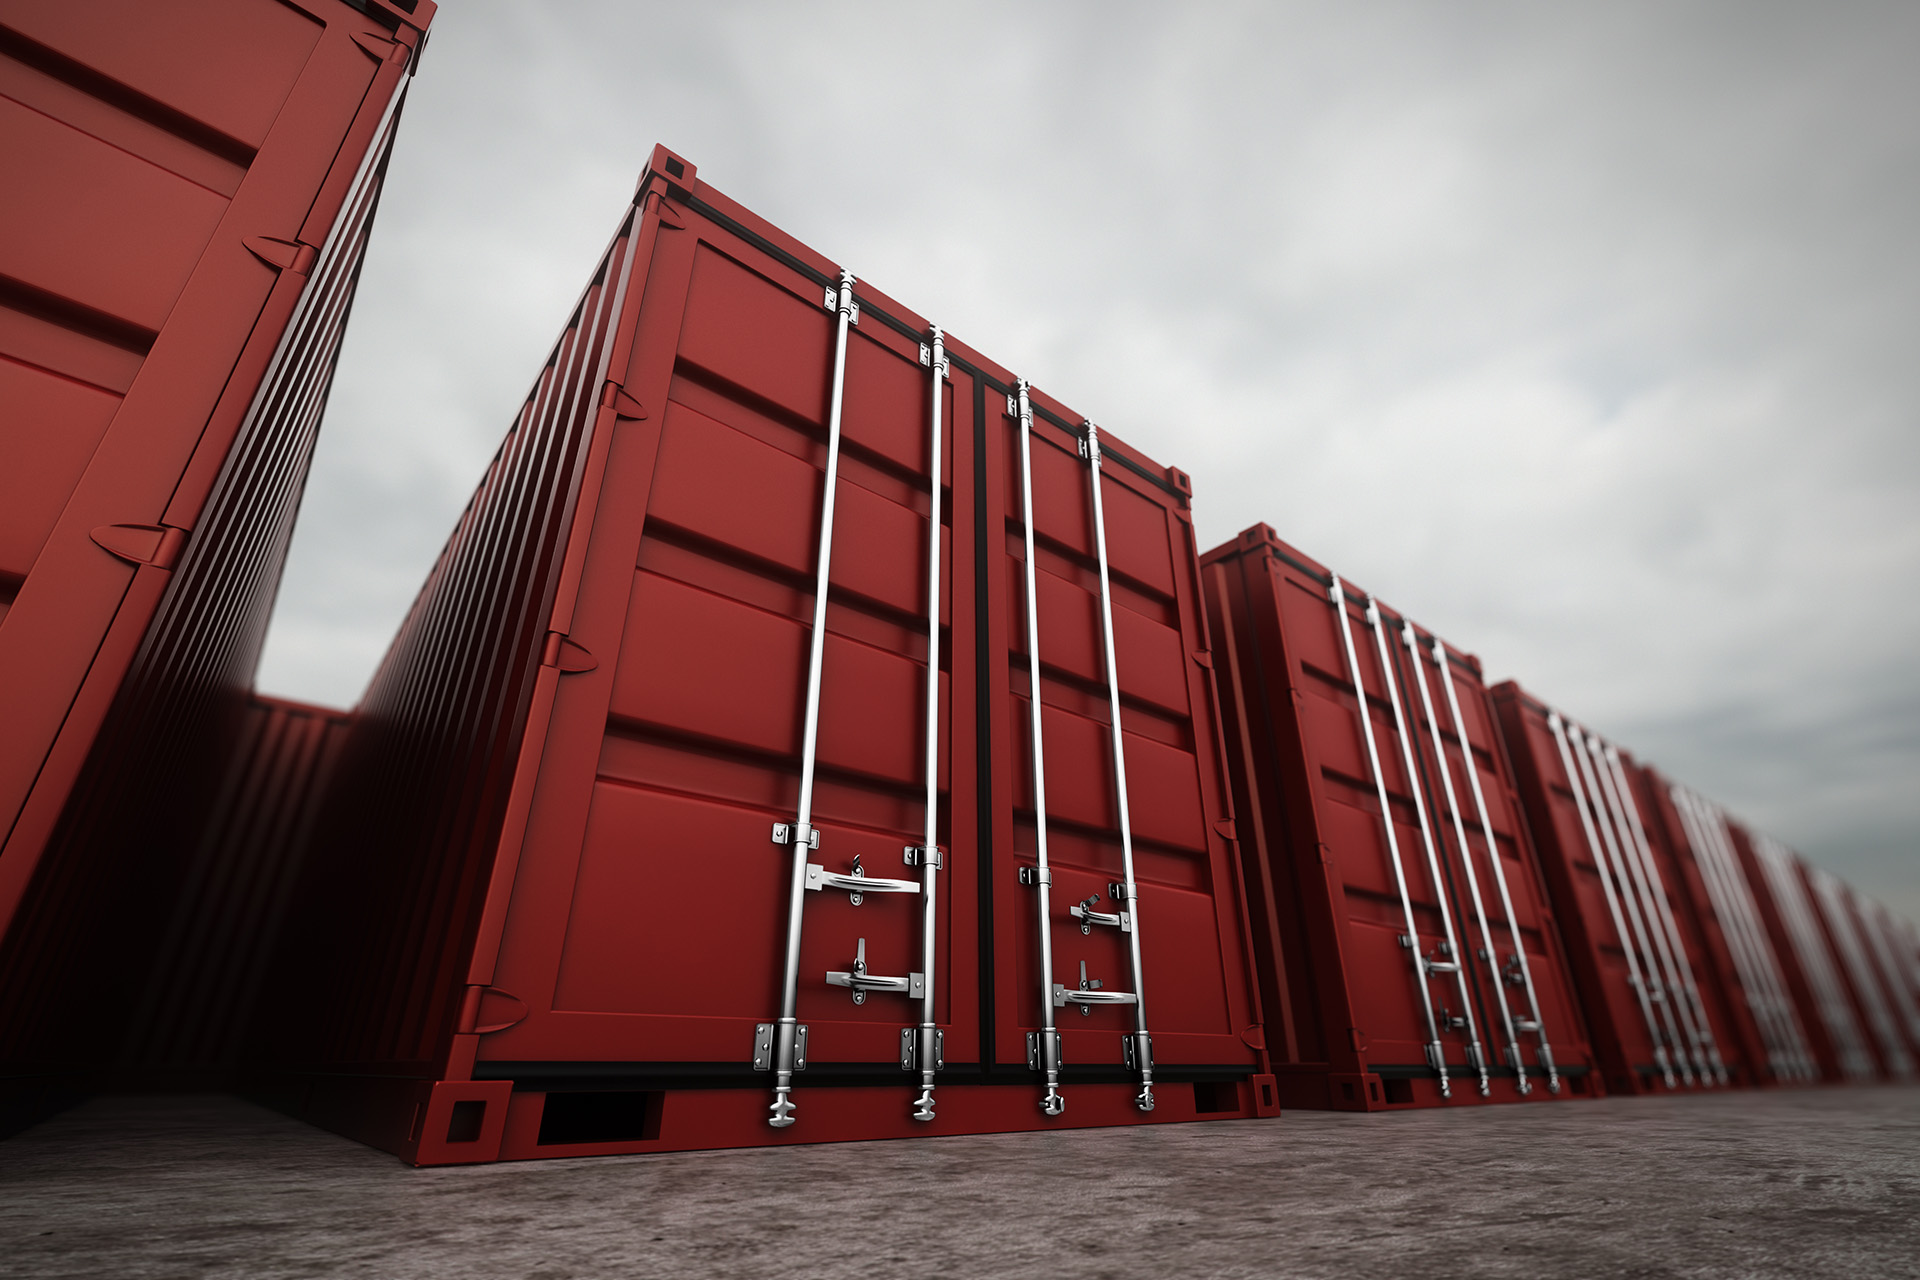 Portable Storage Units, Mobile Storage Units